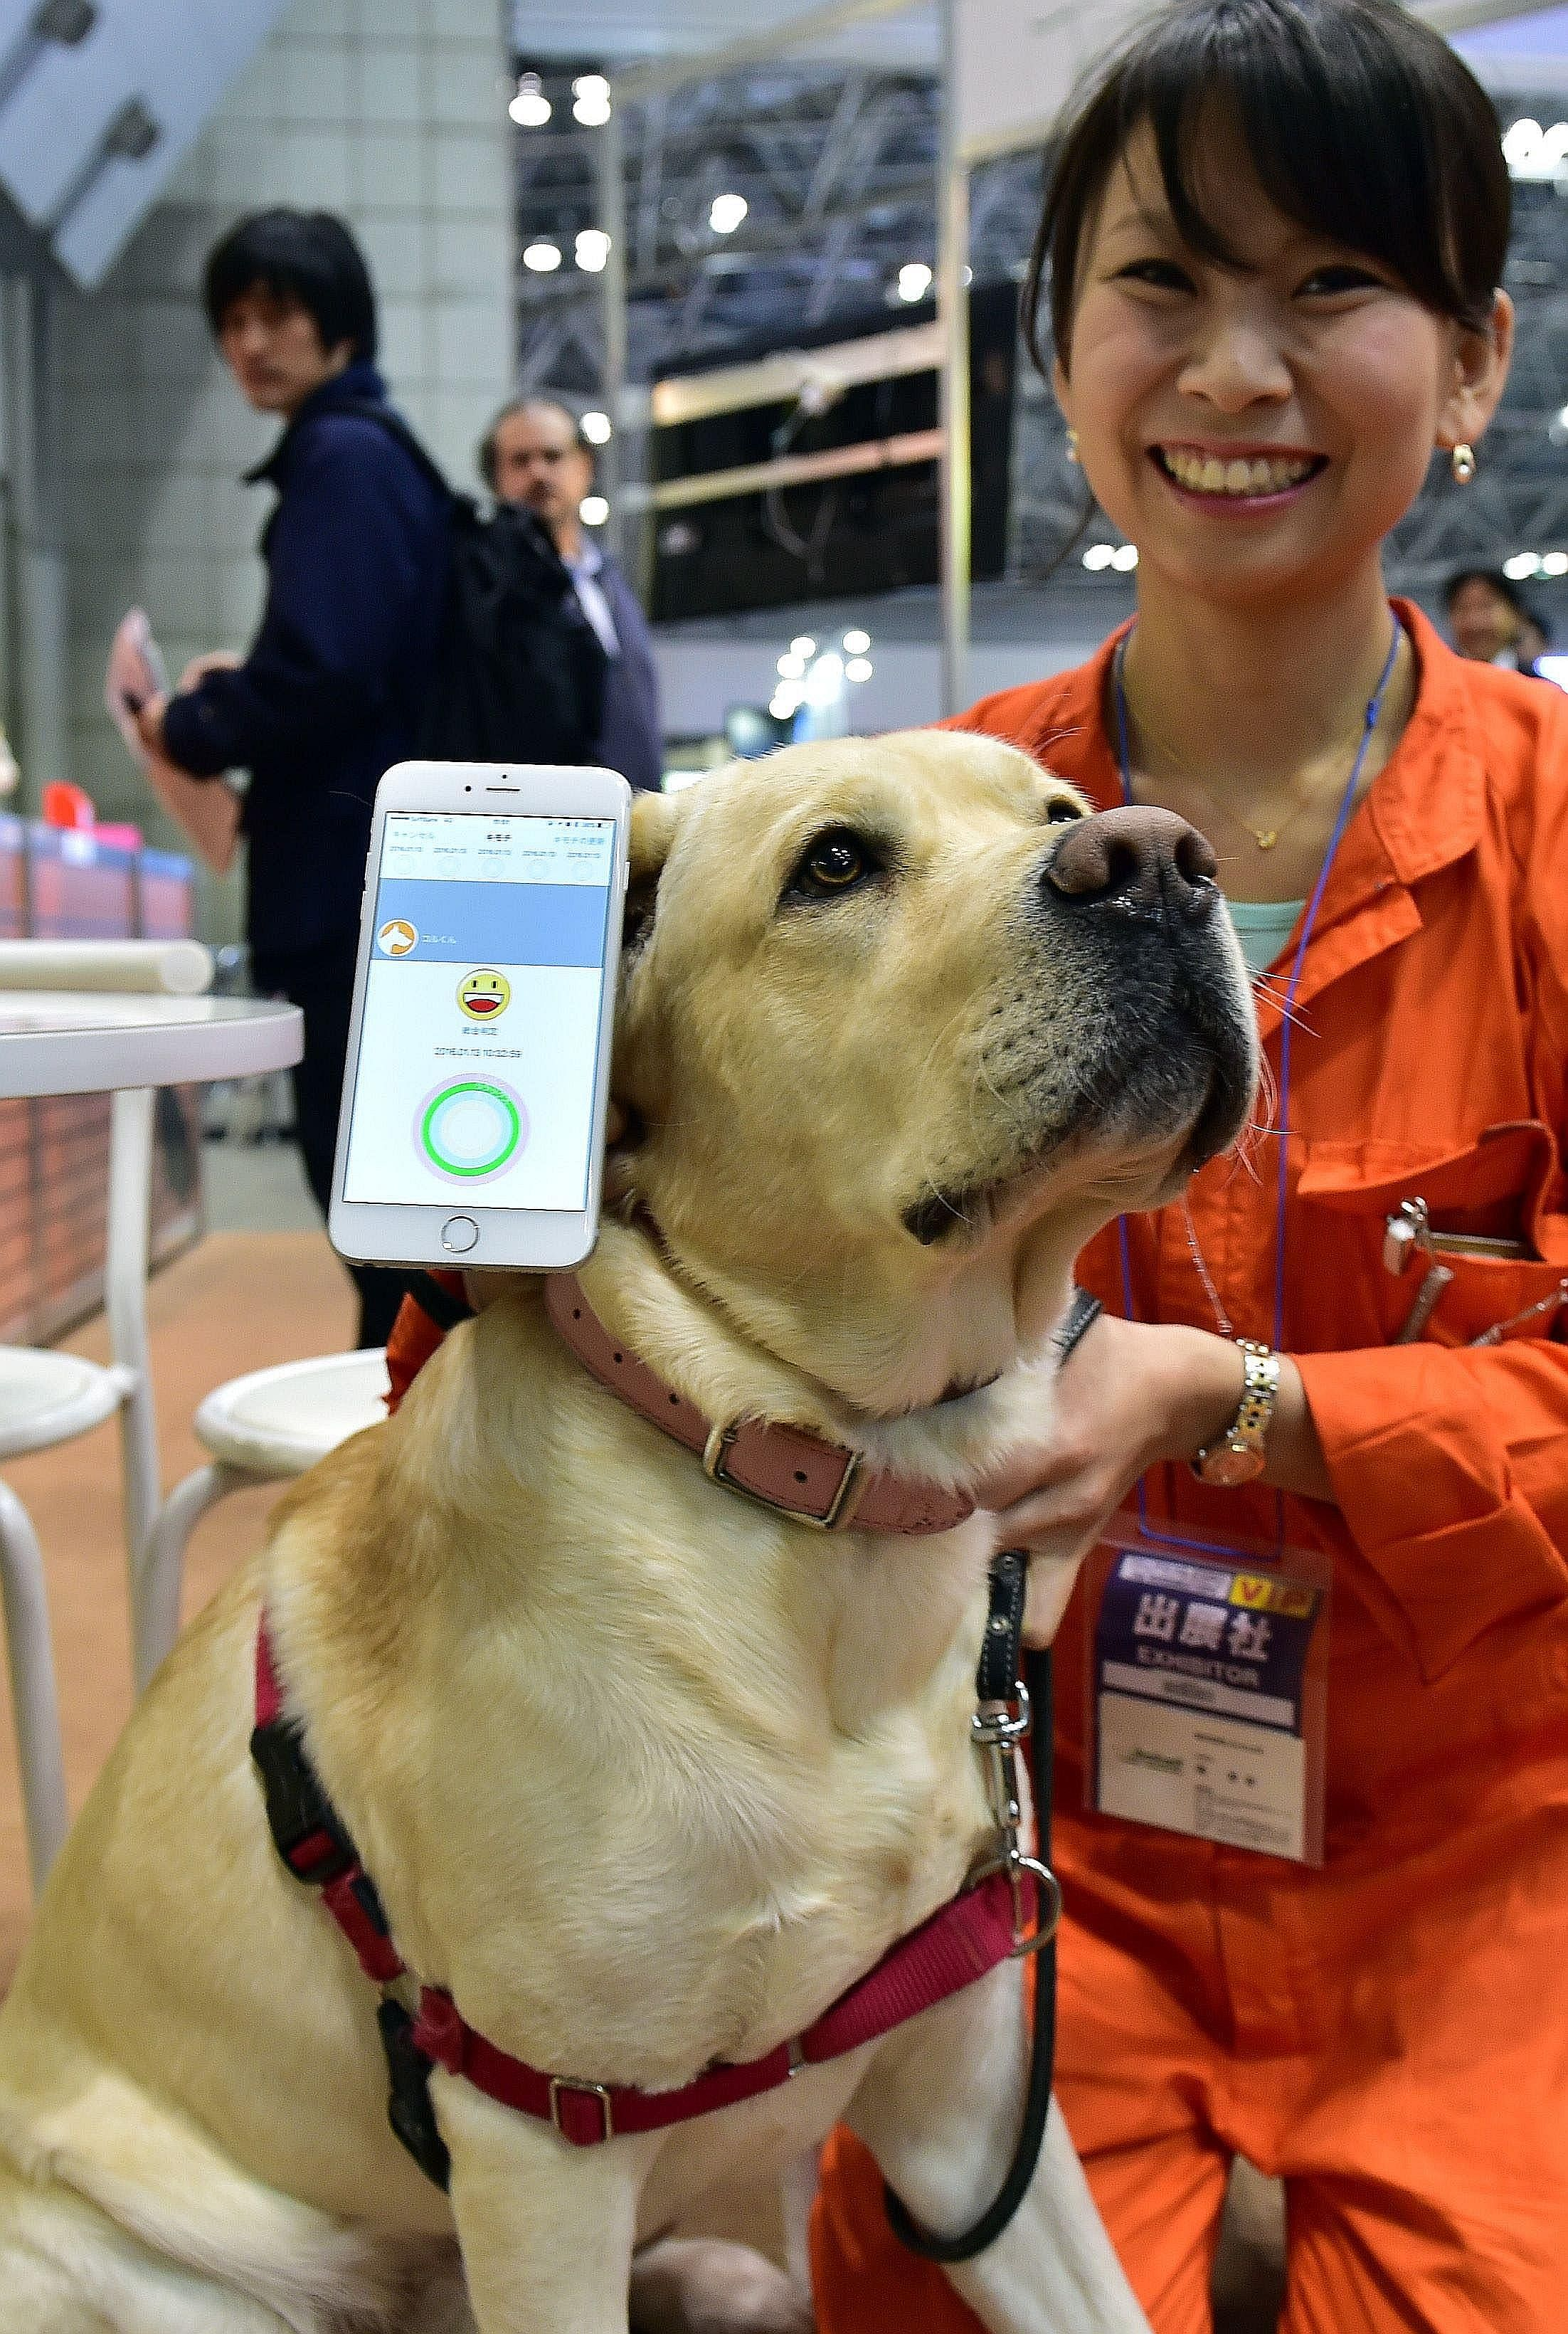 """A dog with a communication device called the """"Internet of Animals"""", developed by Japanese electronics firm Anicall, at the Wearable Device Technology Expo in Tokyo on Wednesday. The device is equipped with sensors to detect motion, temperature and ai"""